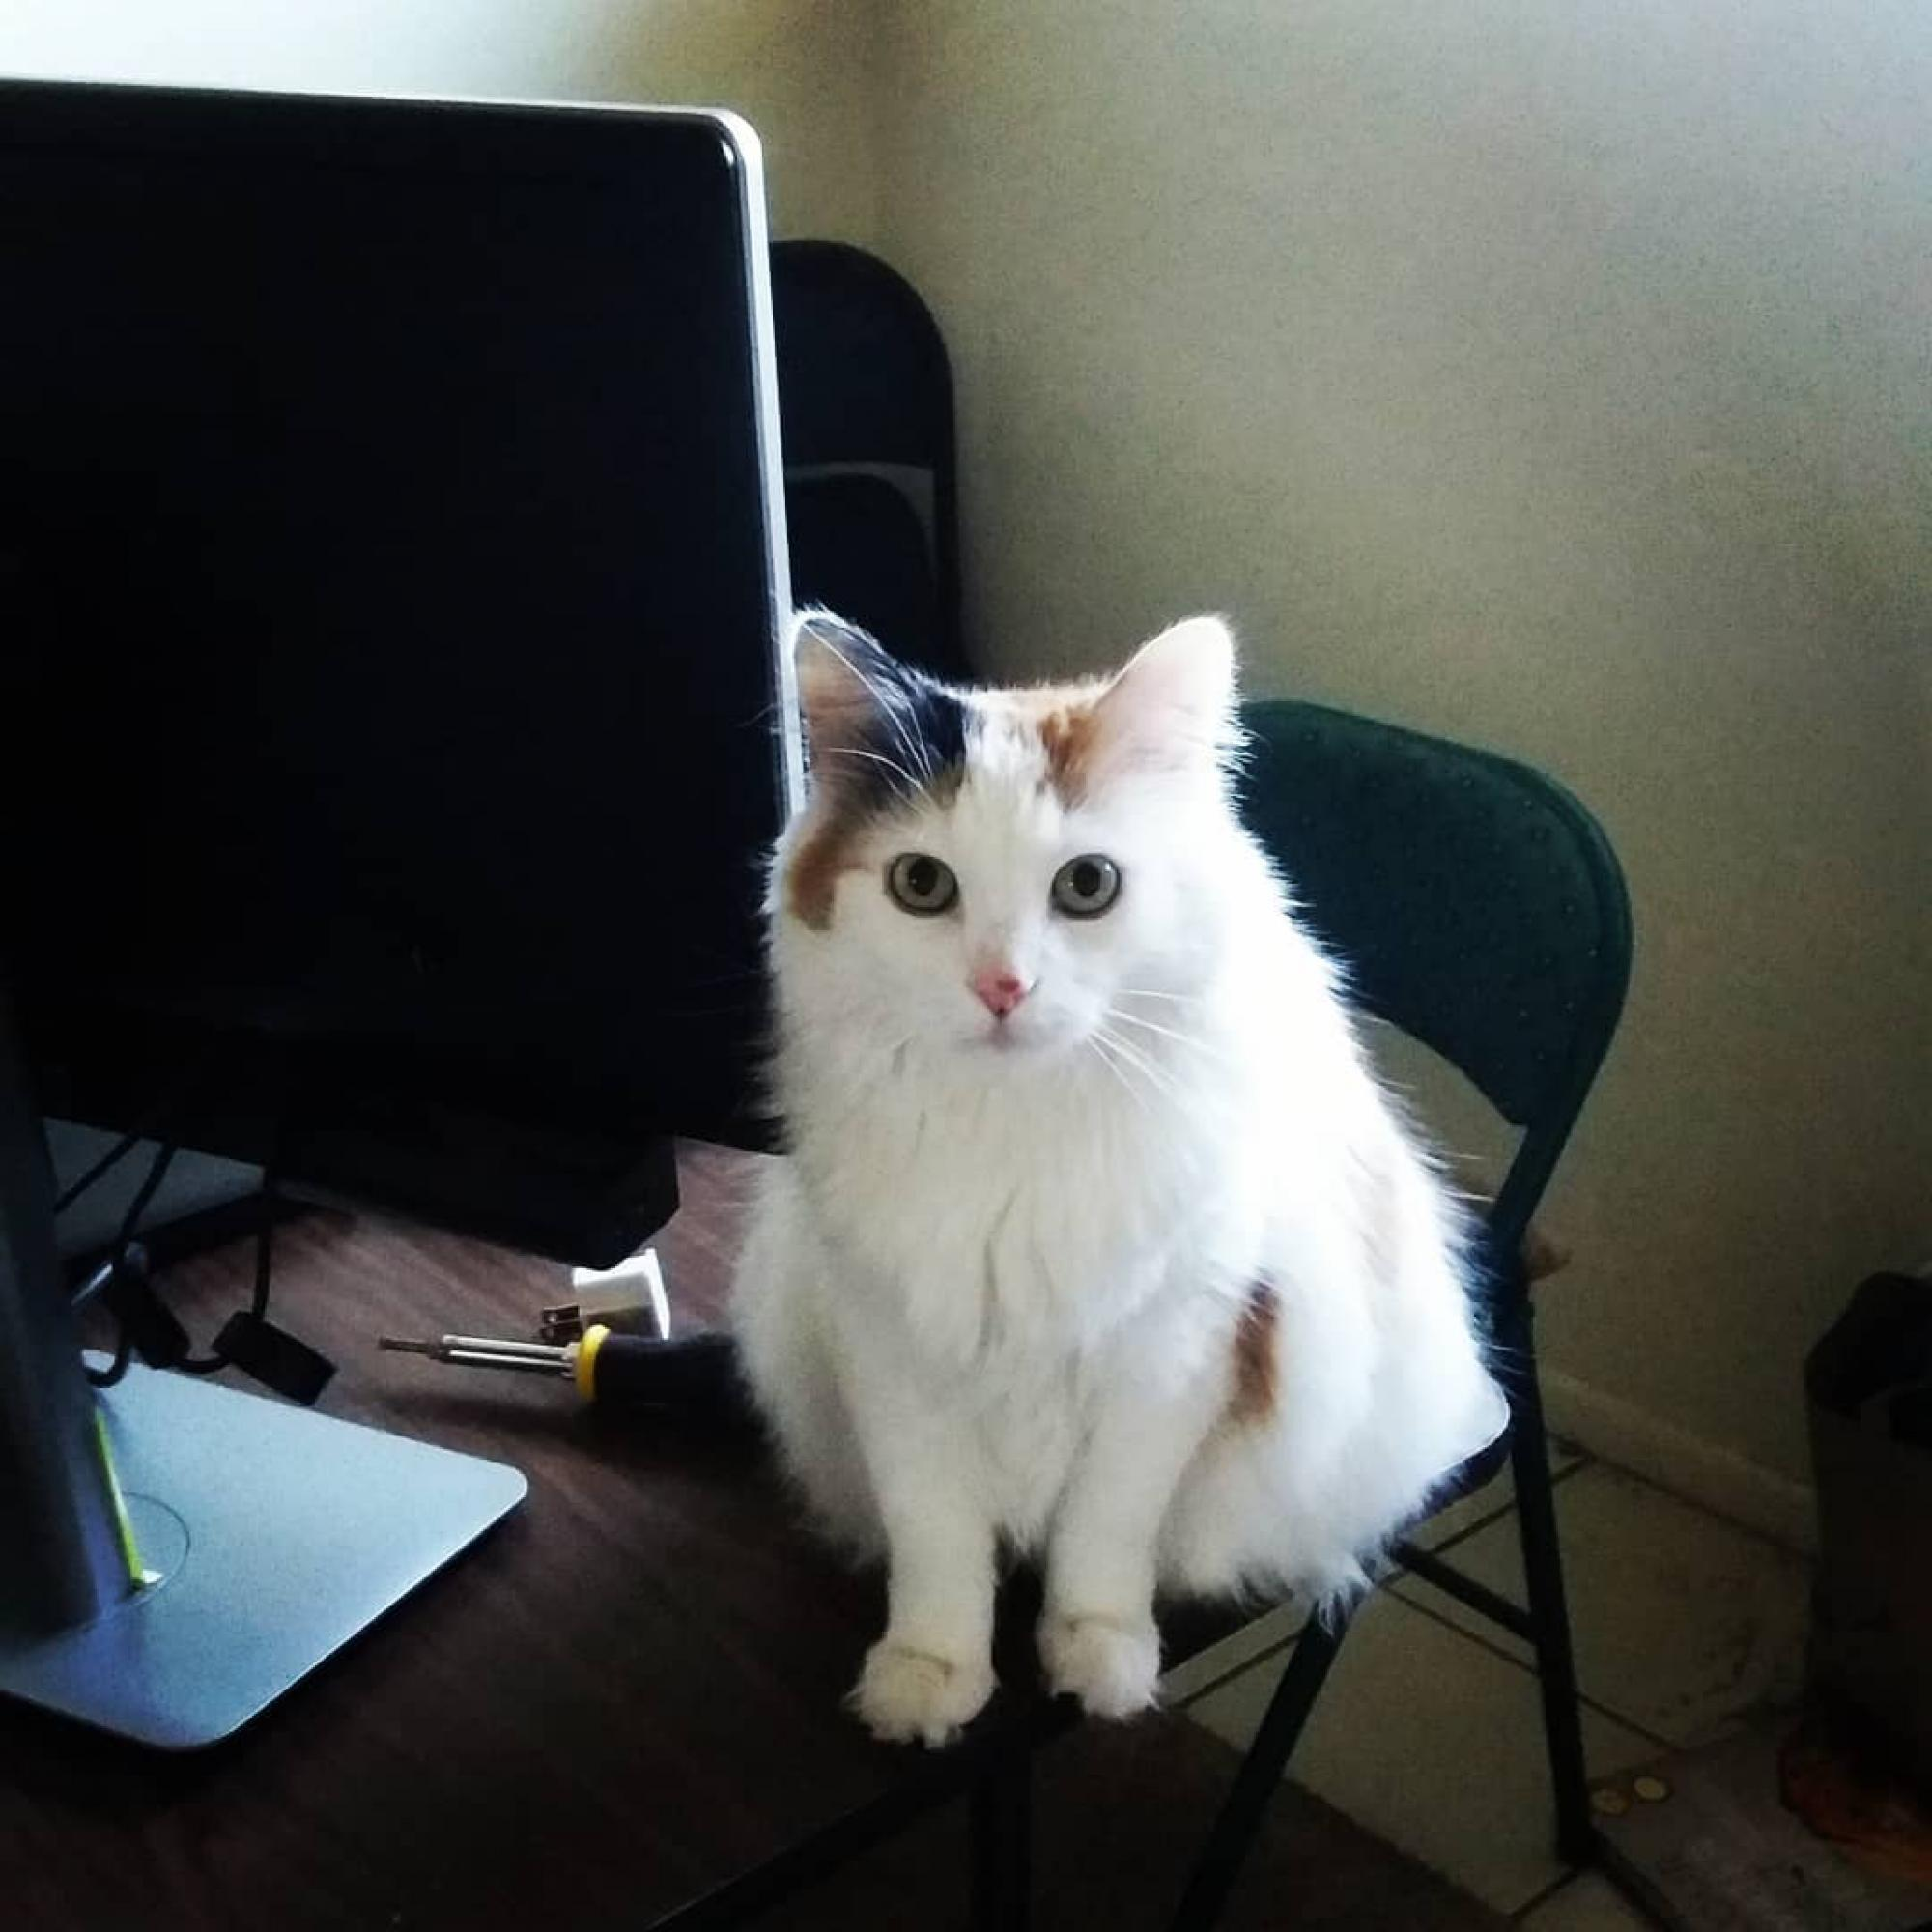 Miss Bumblebee Cabbagepatch making sure my desk setup is purrgonomic. – Aileen J. Dingus, marketing and events coordinator and National Science Foundation Innovation Corps site program manager, Tech Launch Arizona